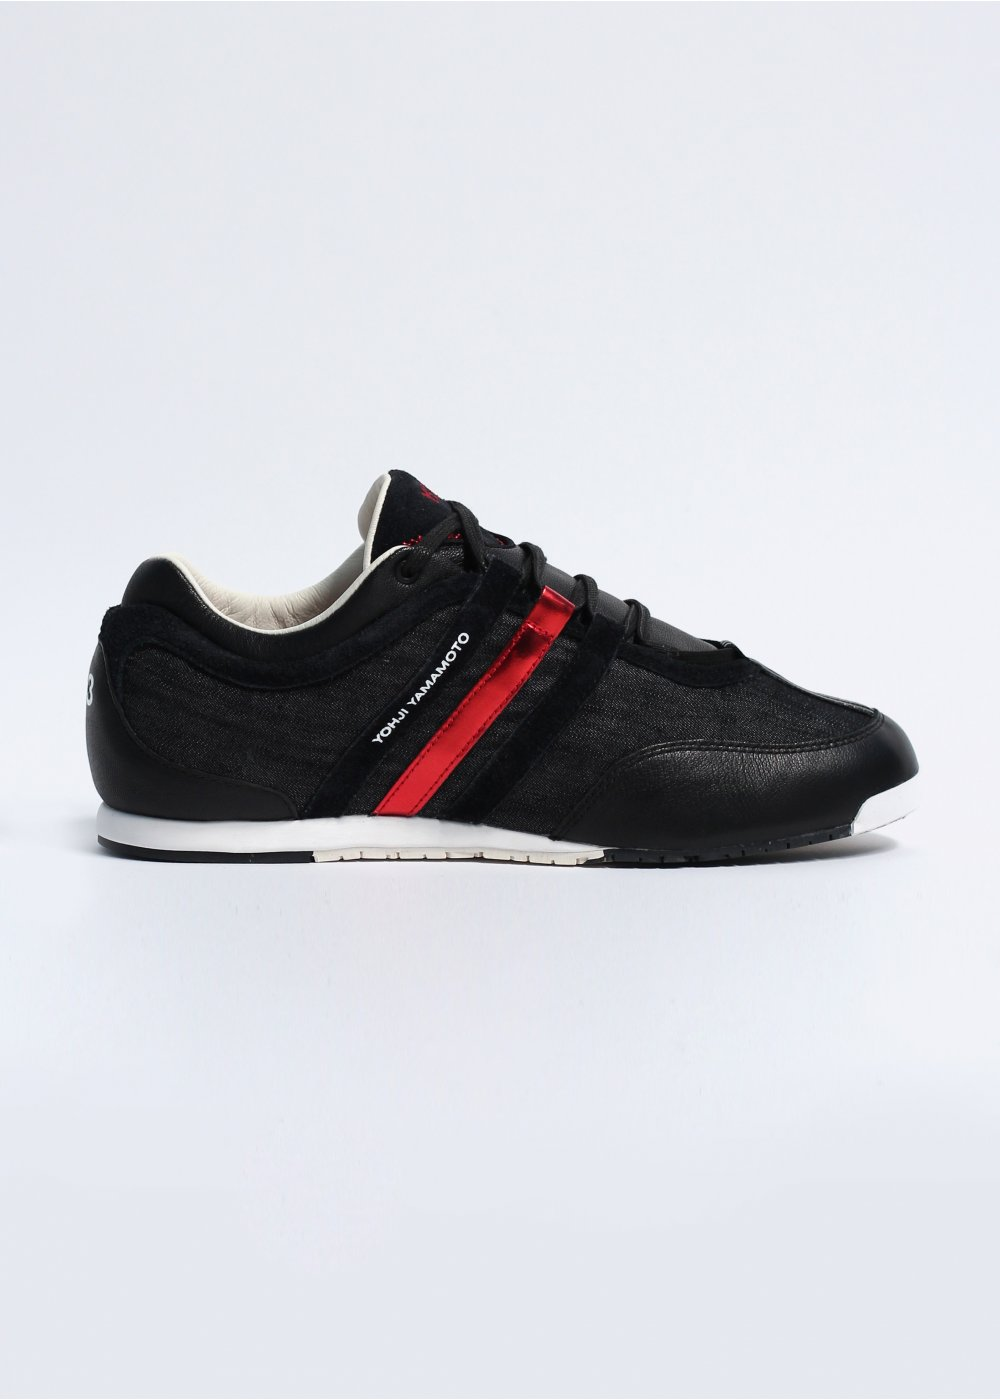 51a15fd688d73 adidas Y-3 Boxing Denim Trainers - Black   Running White